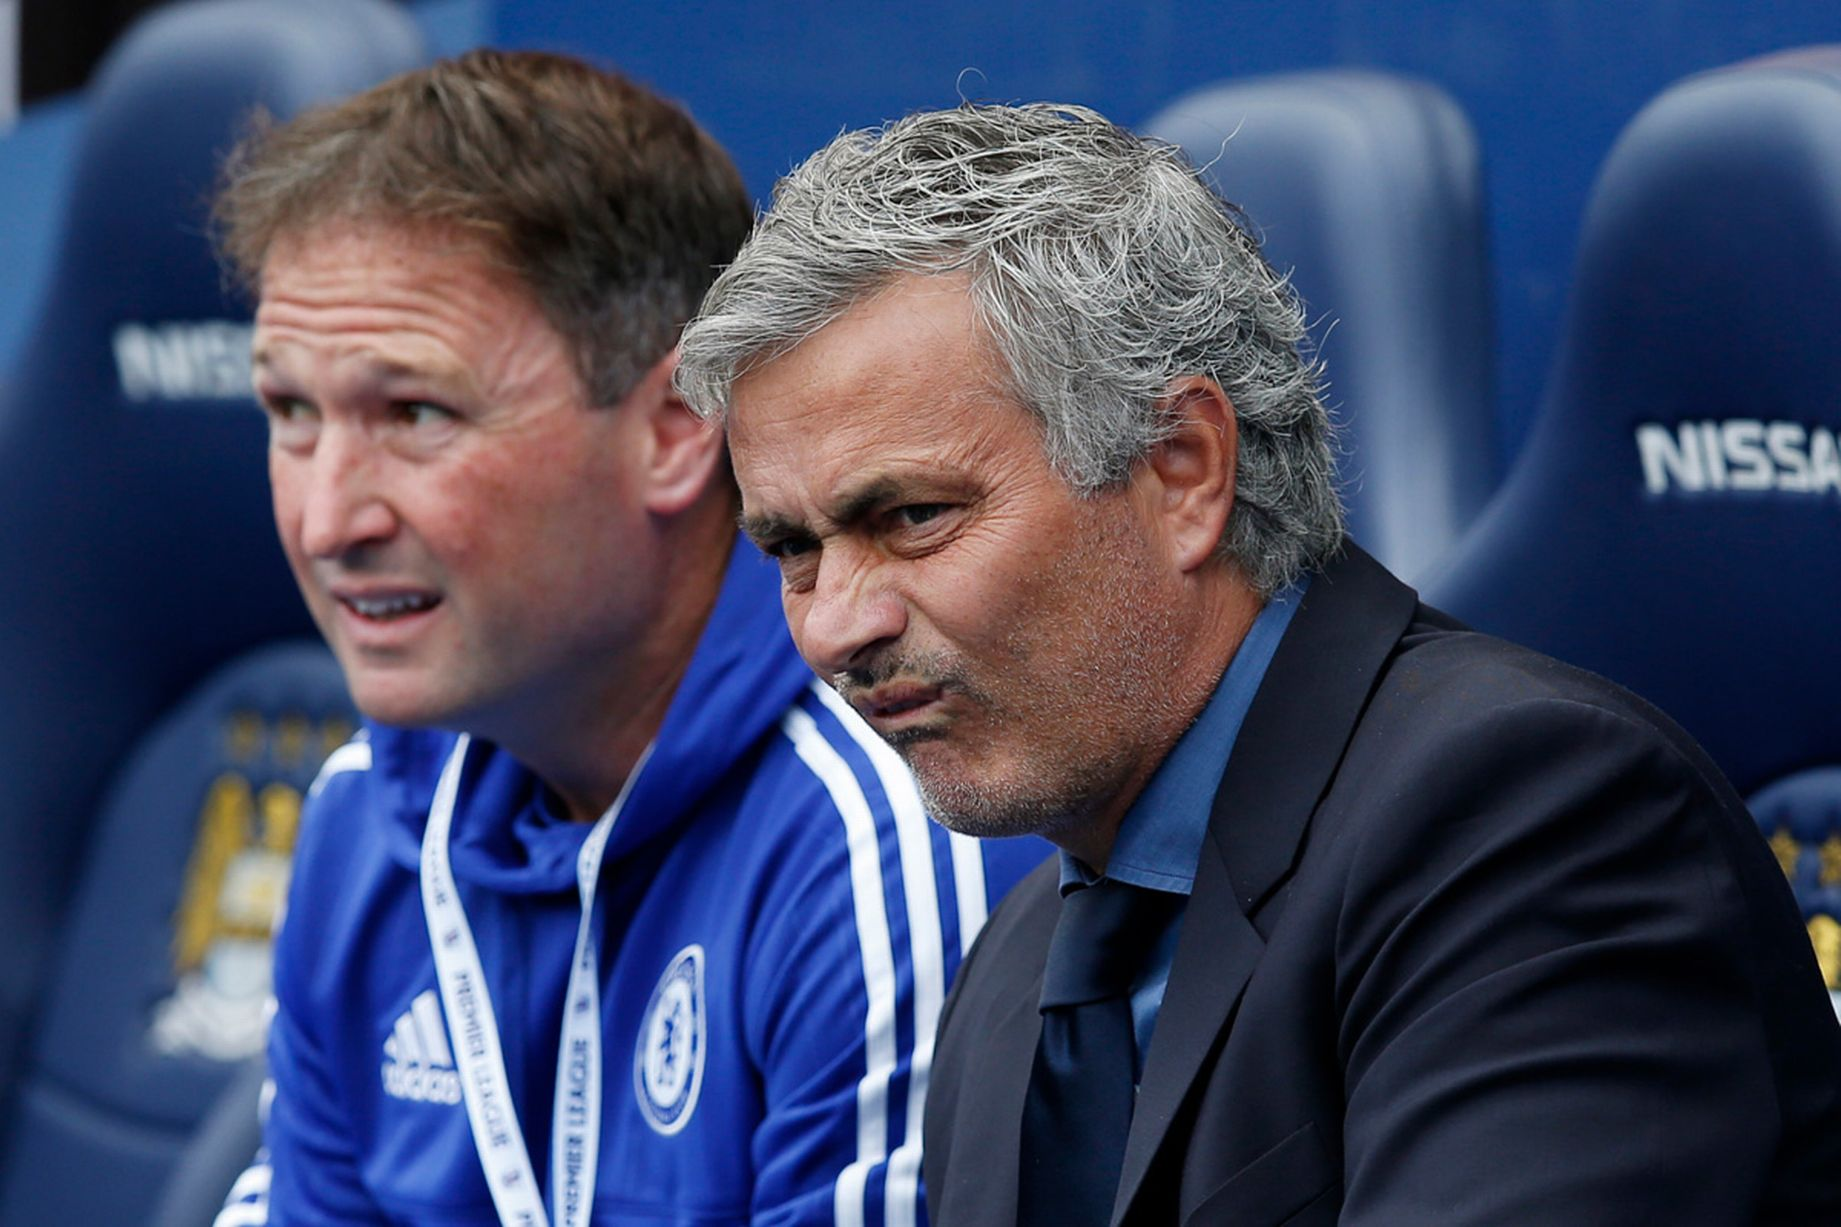 Whincing Mourinho - Yes, it hurts when you get walloped doesn't it Jose?